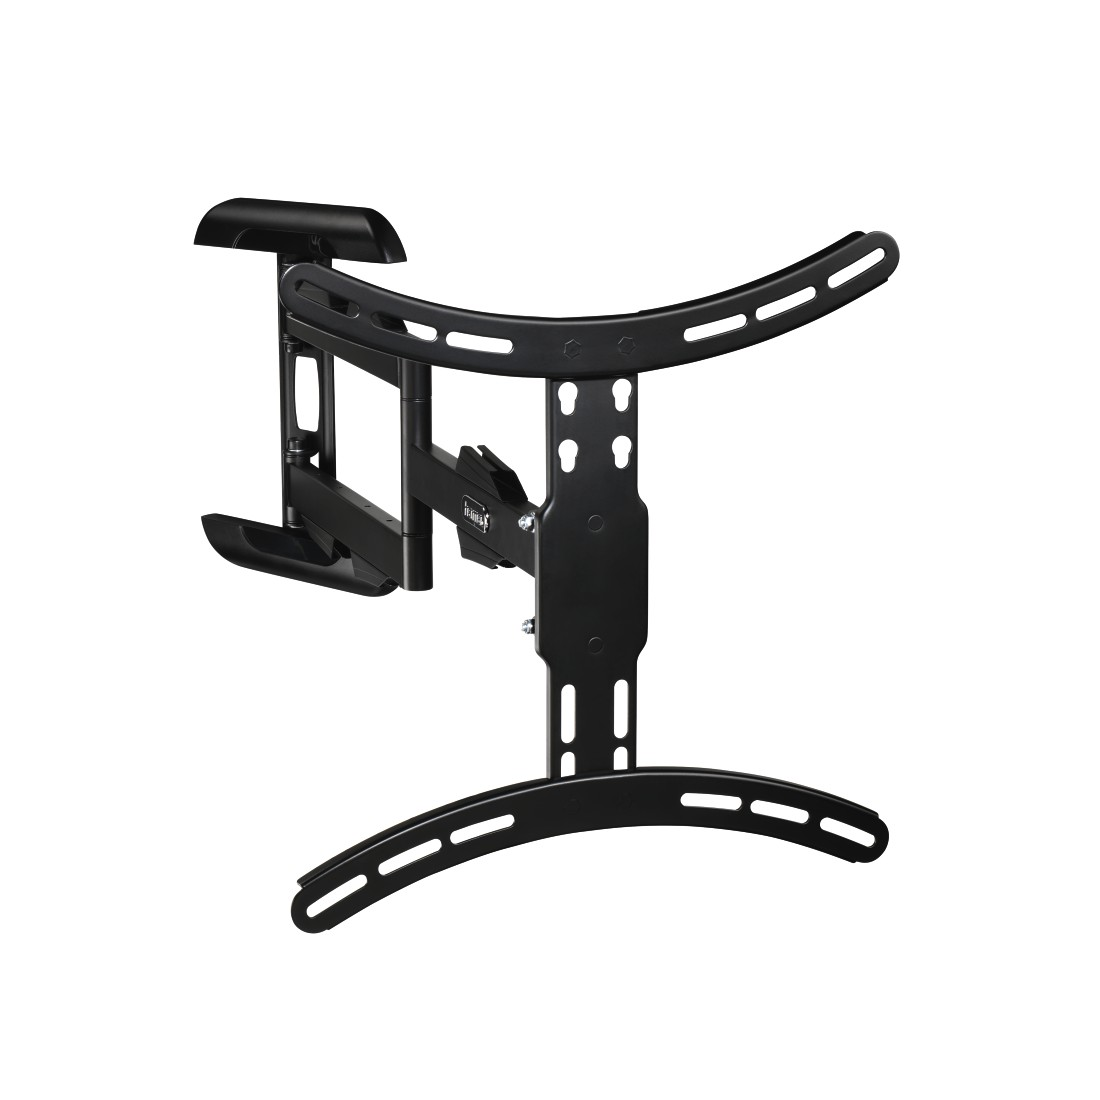 "dex10 Druckfähiges Detail 10 - Hama, FULLMOTION TV Wall Bracket, 3 Stars, 165 cm (65""), 2 arms, ultra-long"